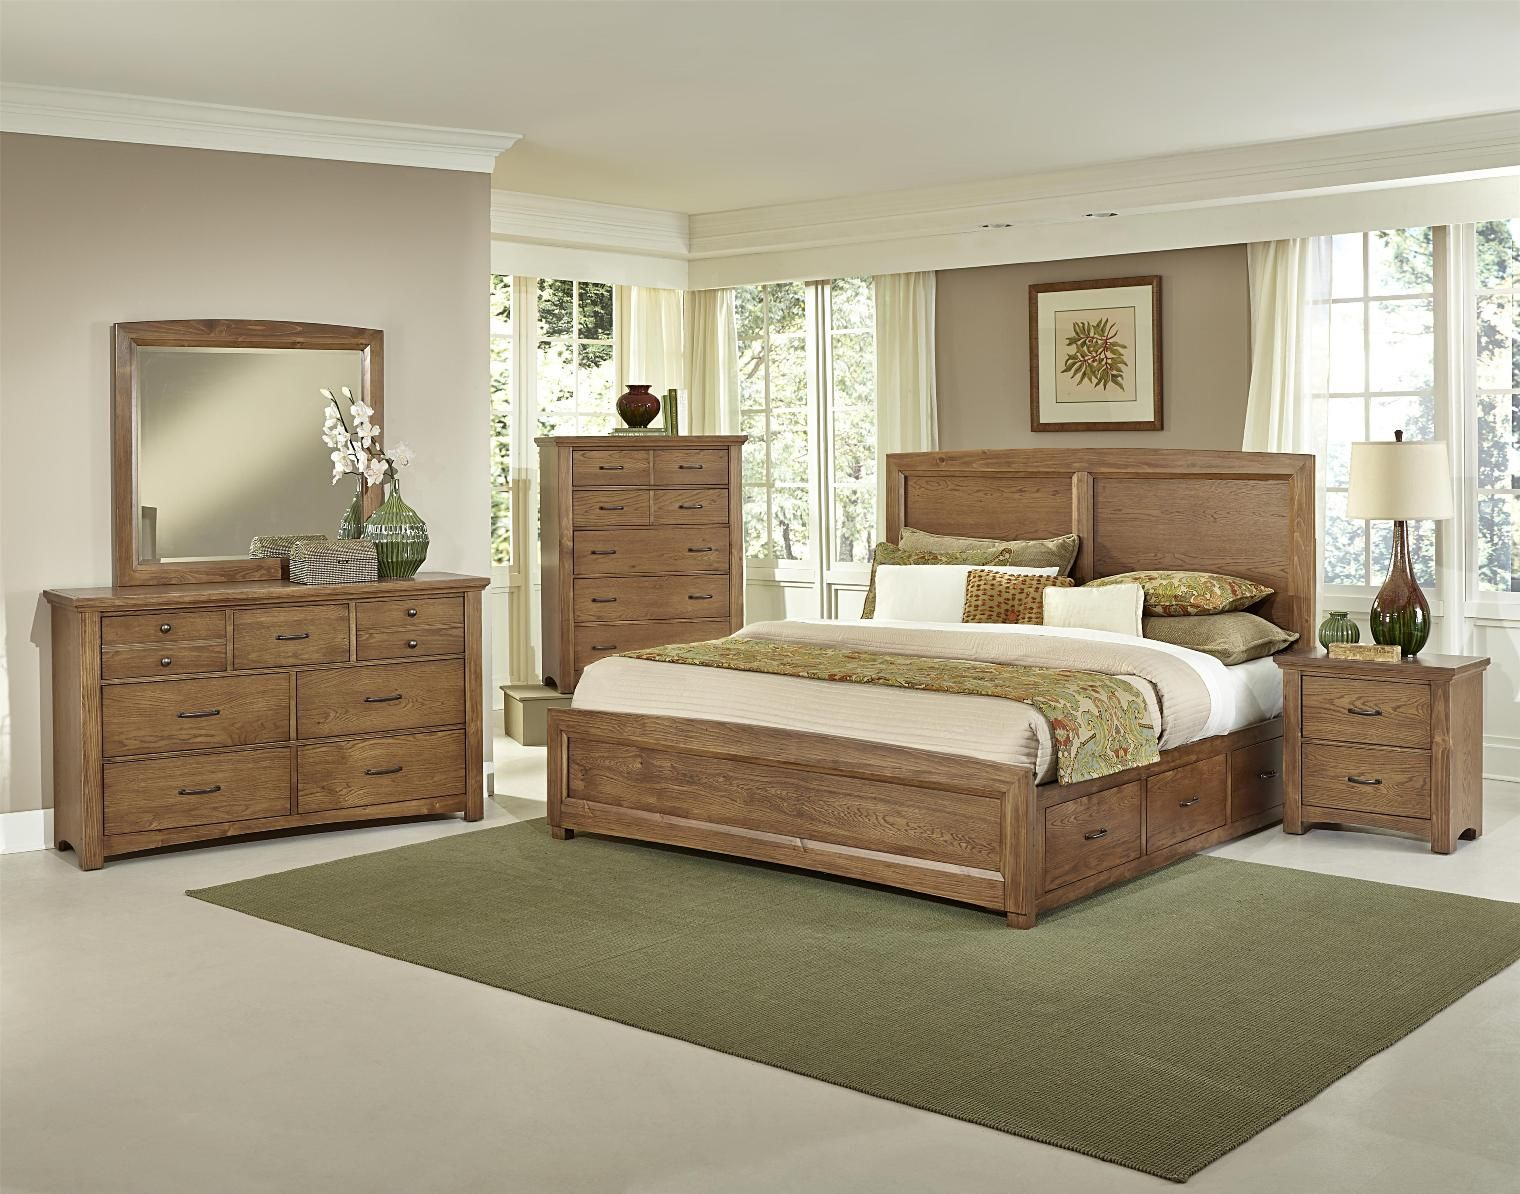 Vaughan-Basset Transitions 4 Piece Panel Bedroom Set with 2 Side Storage in Dark Oak